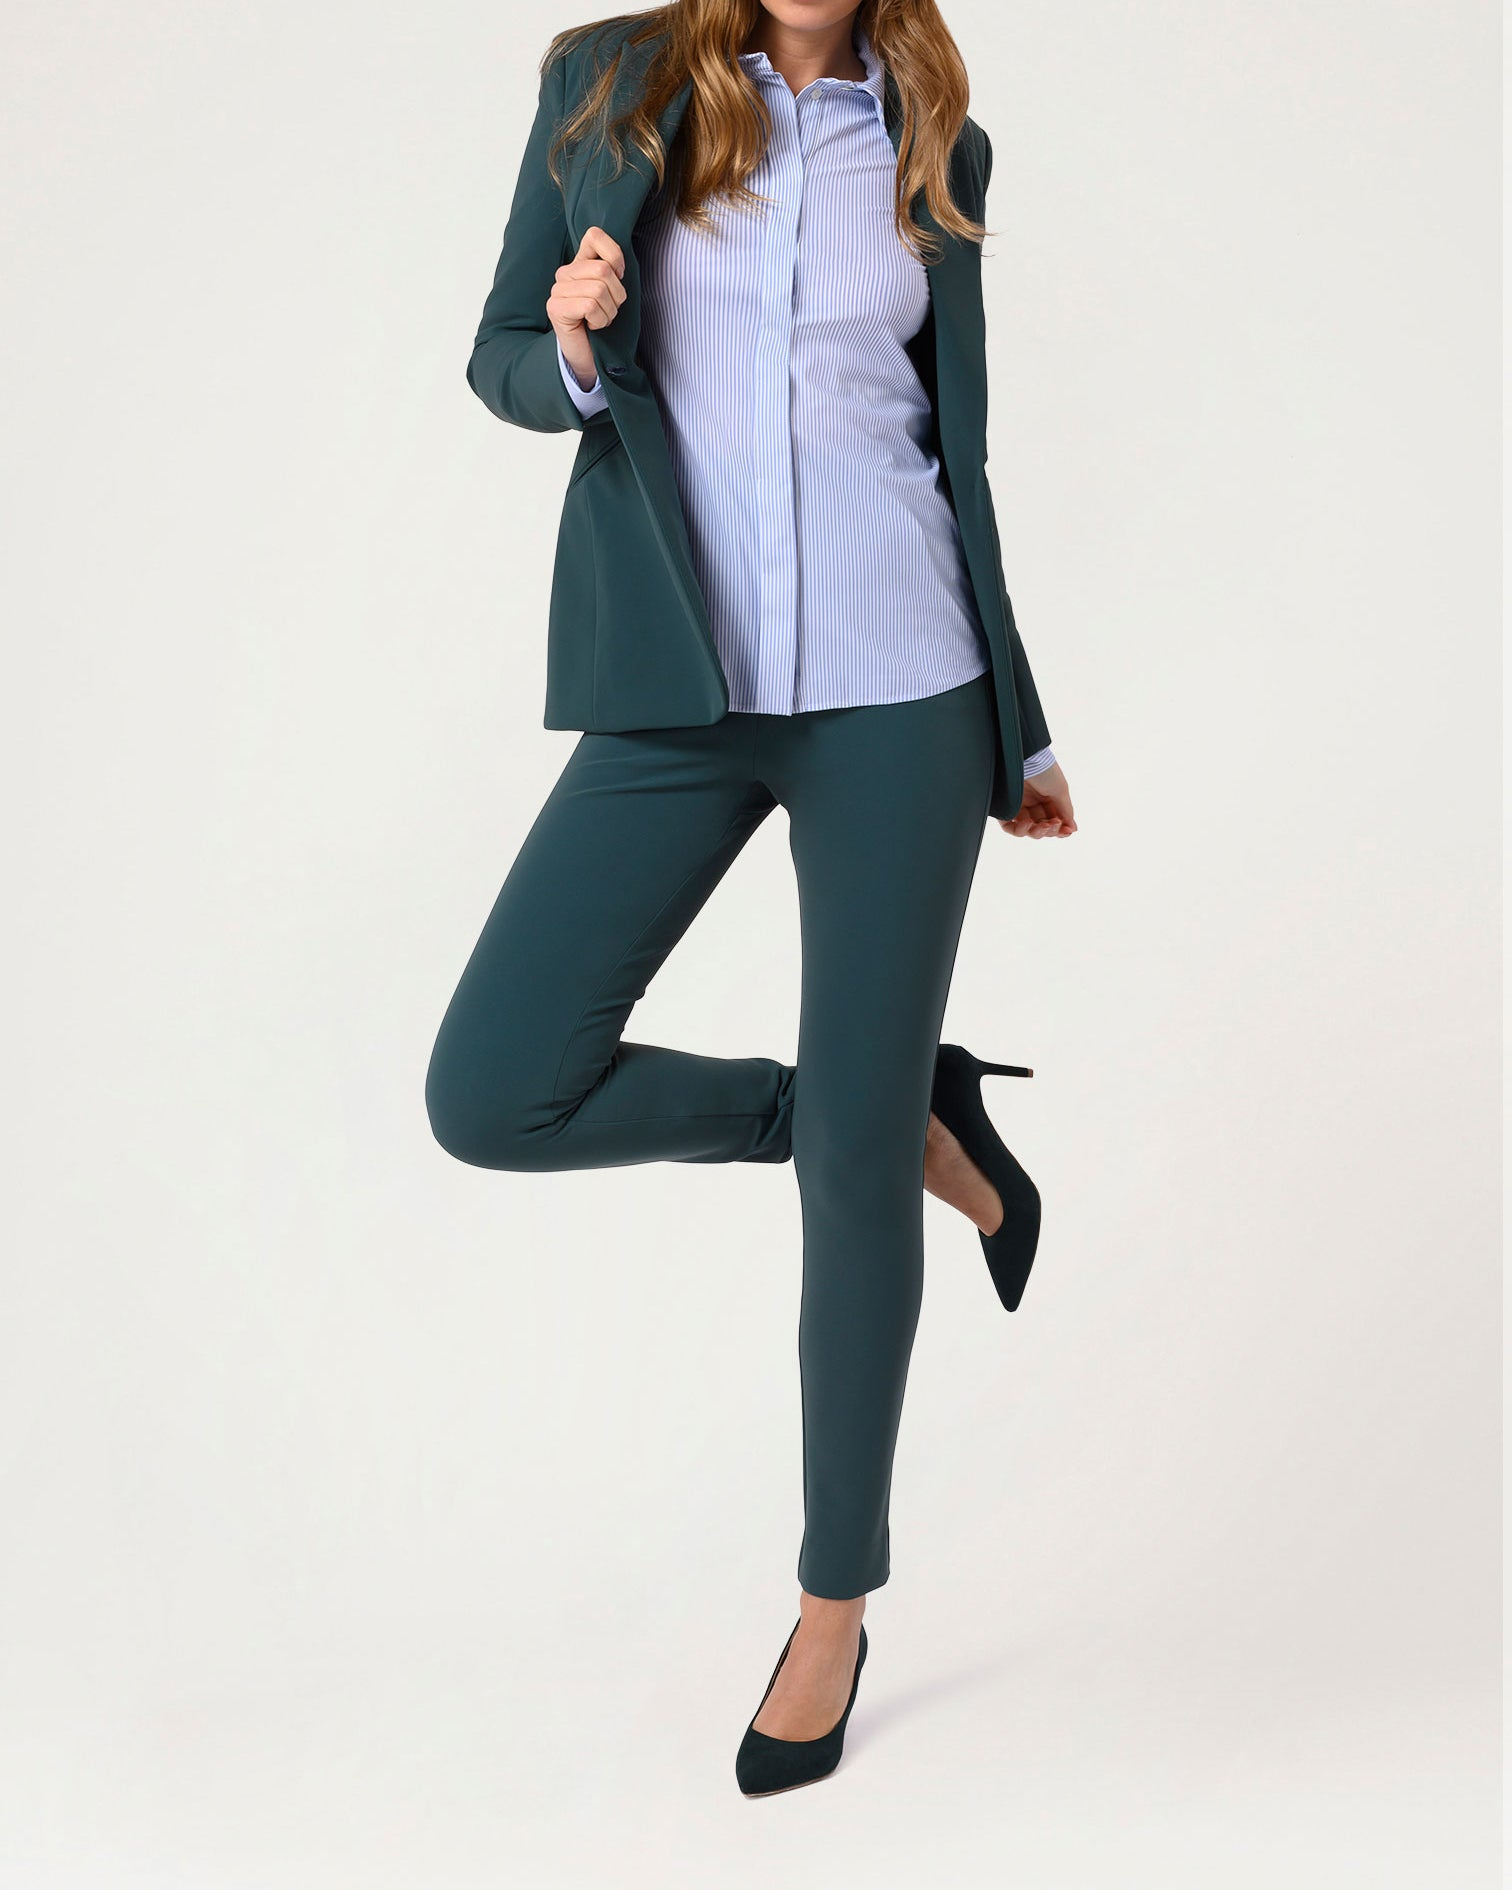 Power Move Trousers Deep Seafoam 2.0